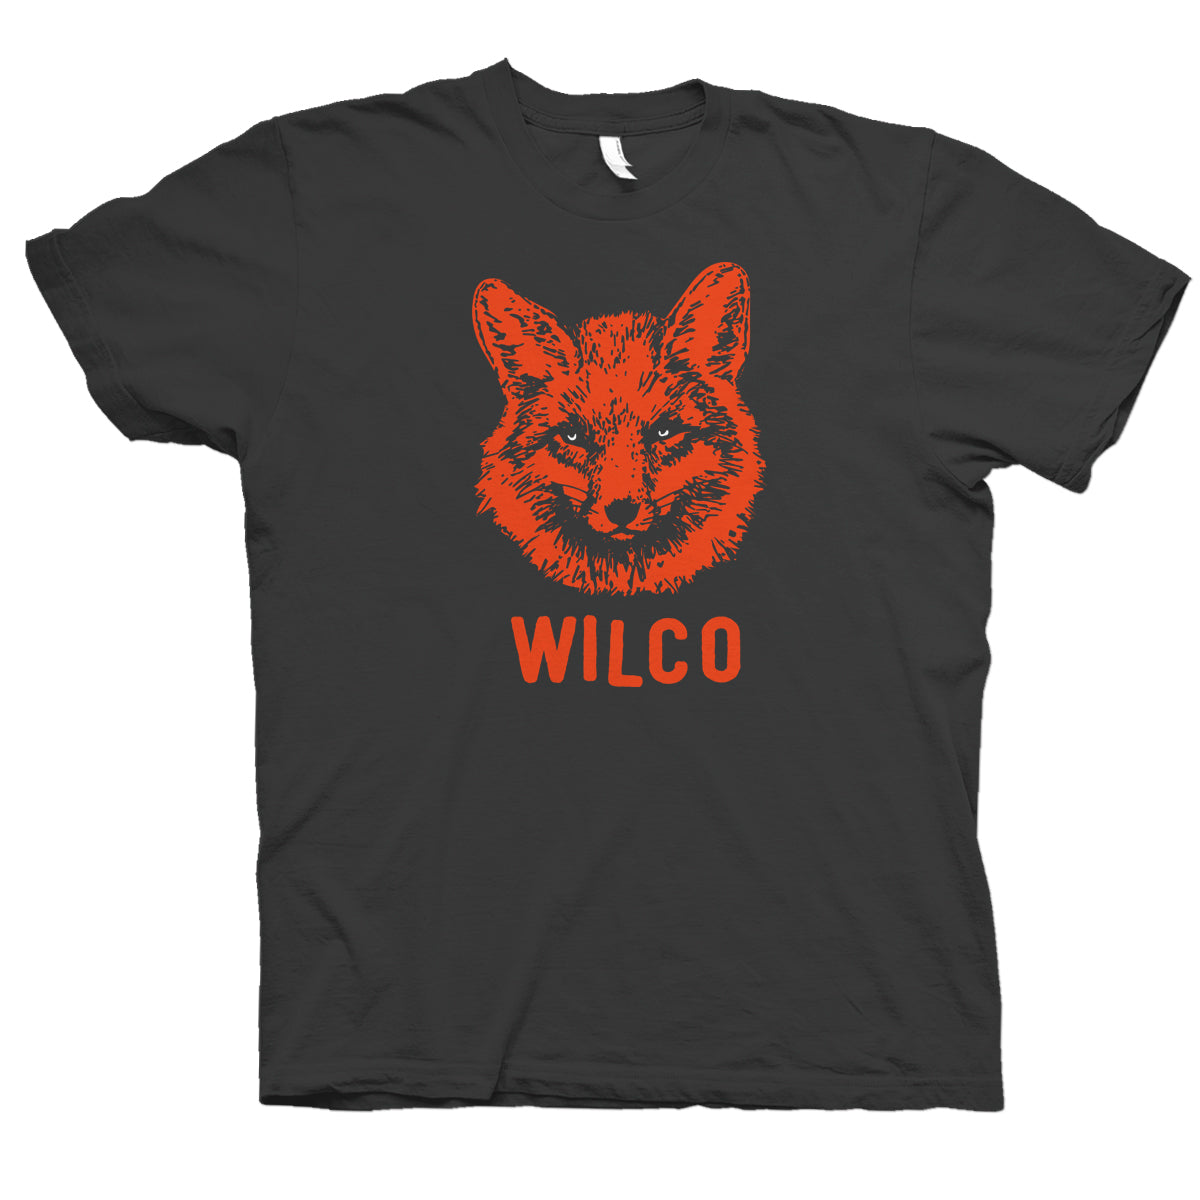 Wilco Fox design on a grey Tshirt from Bingo Merch Official Merchandise